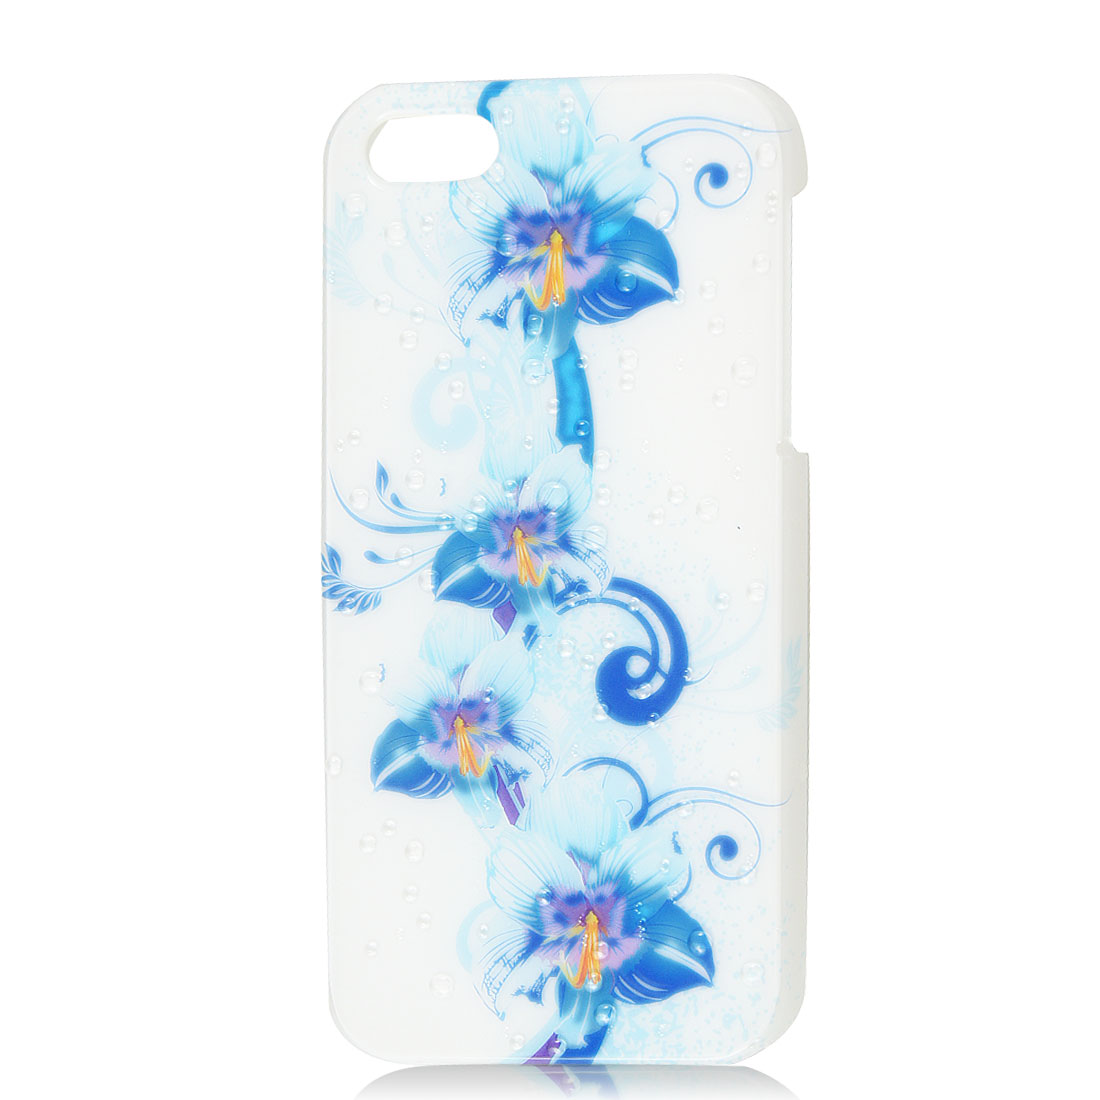 Light Blue Floral 3D Water Drop Raindrop Hard Back Case Cover for iPhone 5 5G